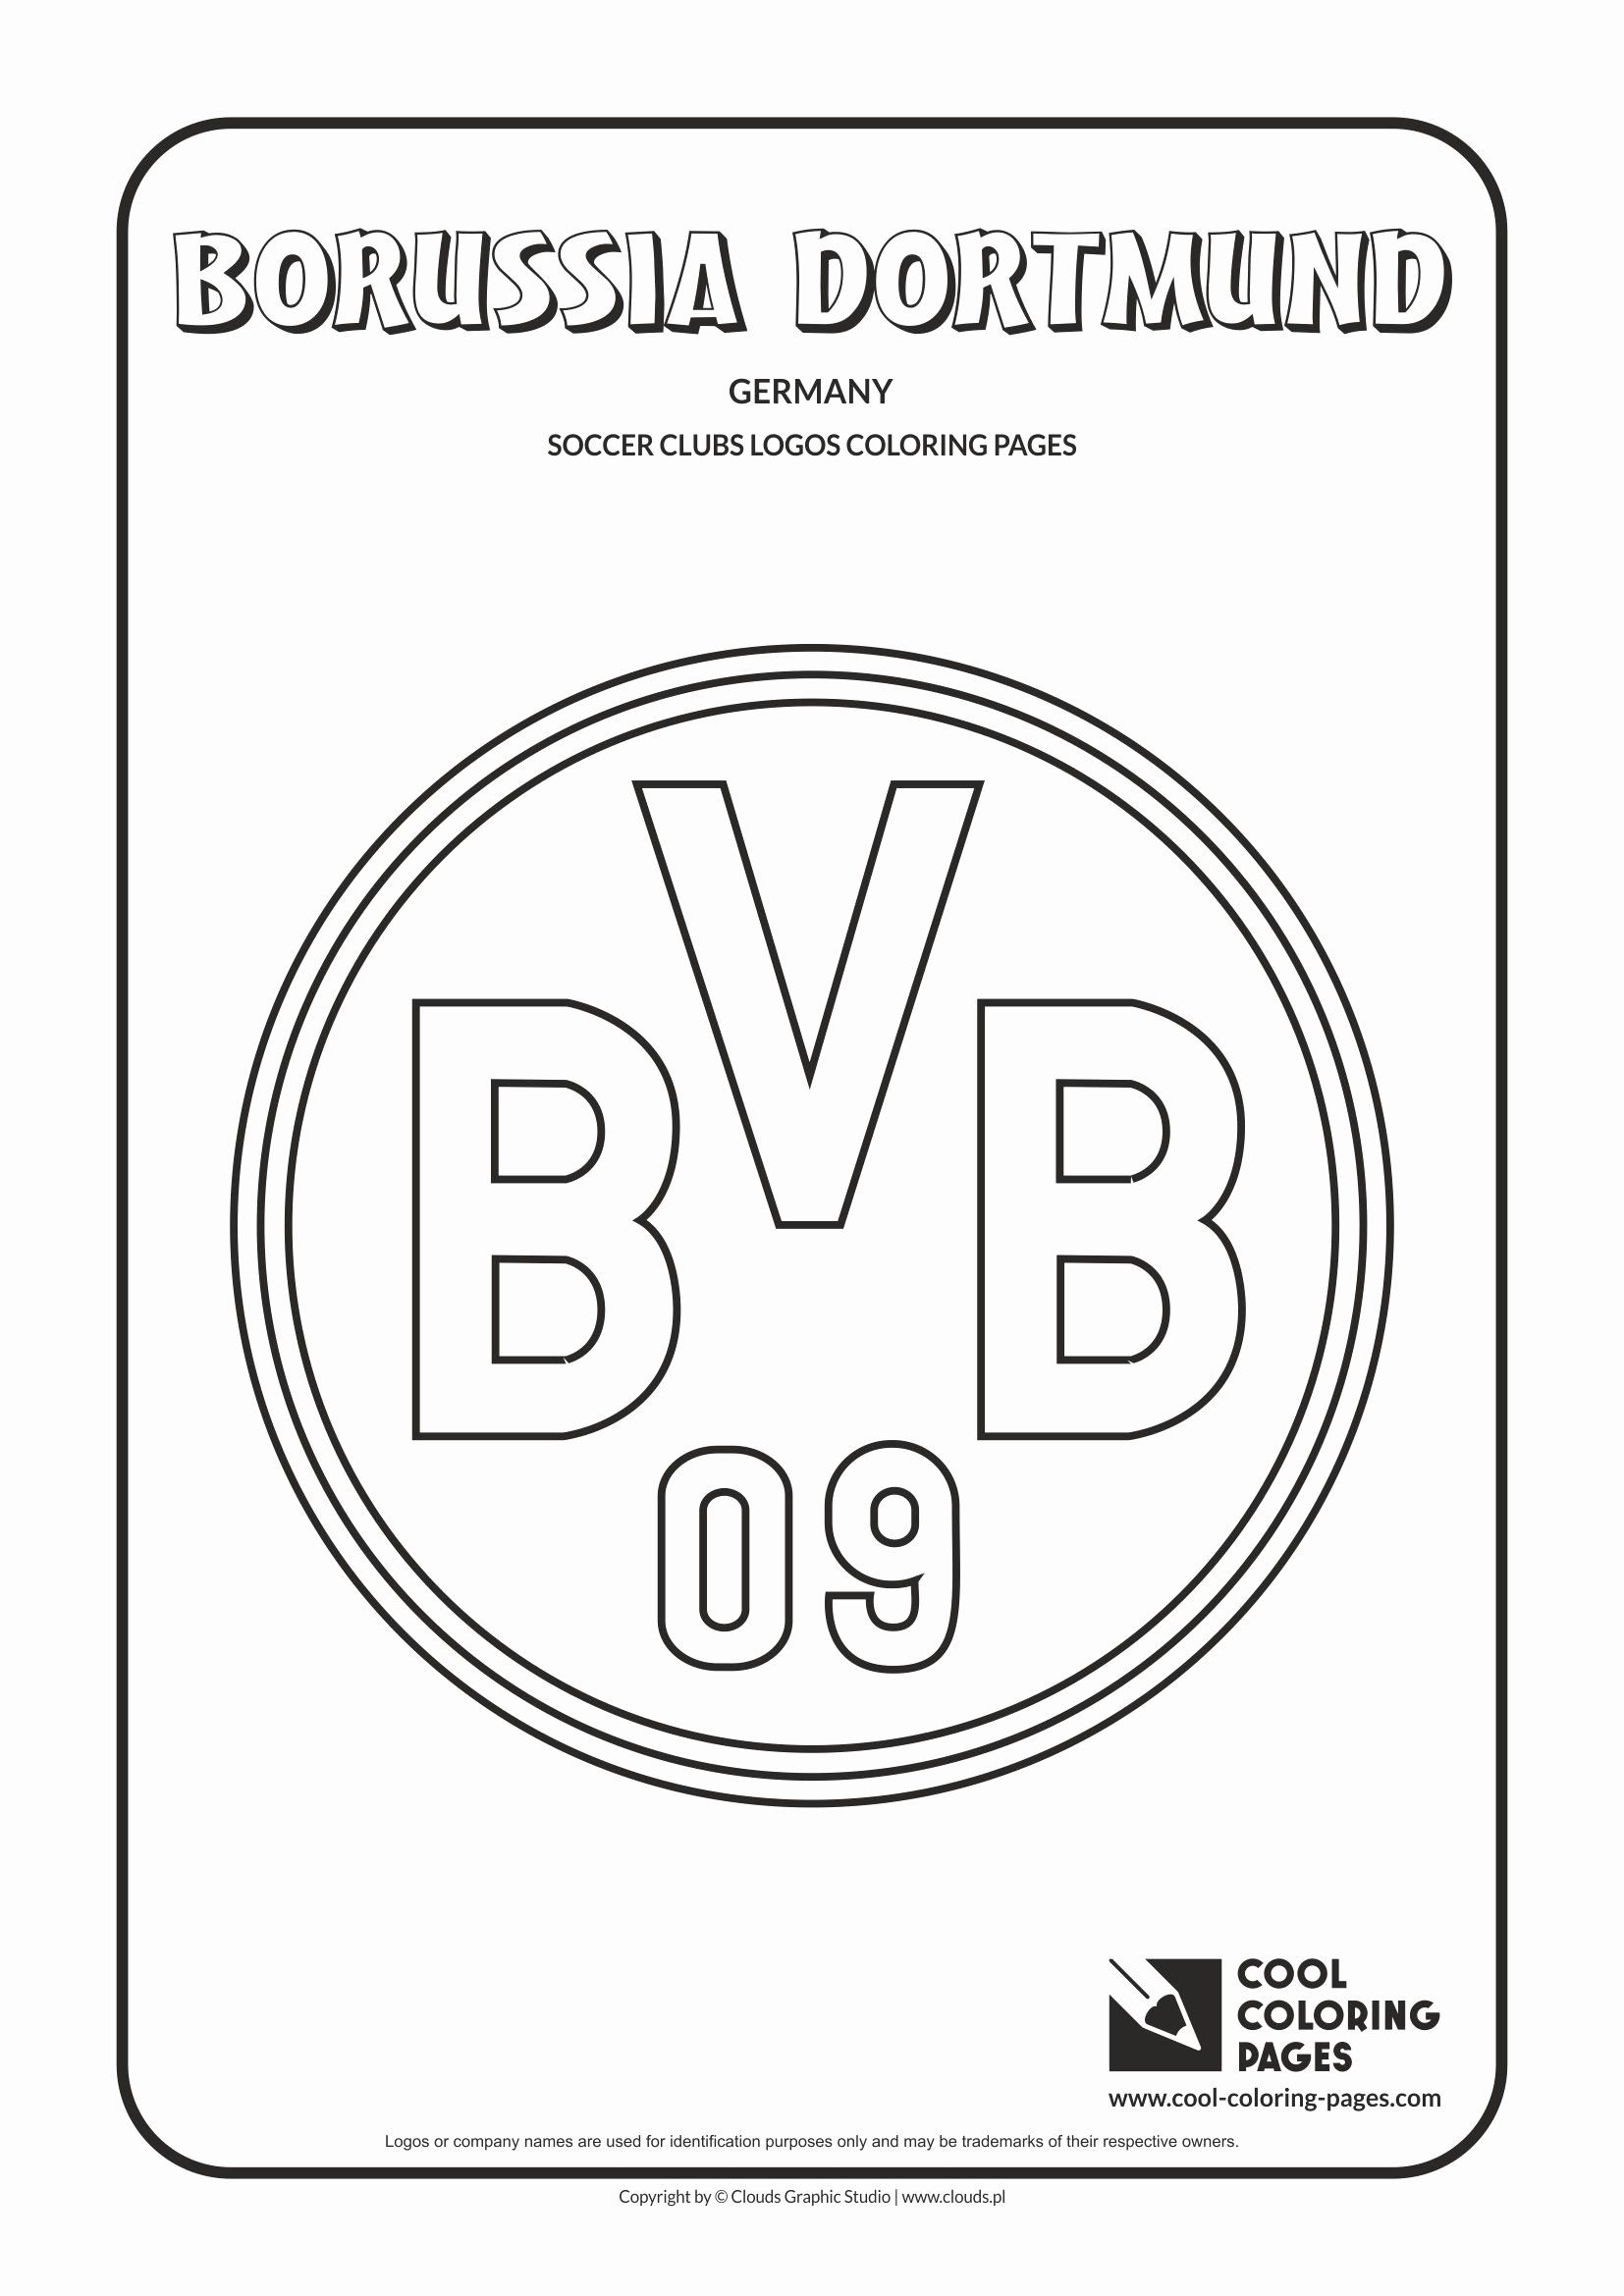 Soccer Team Coloring Pages Awesome Soccer Team Coloring Pages Album Sabadaphnecottage Bvb Bilder Dortmund Bilder Ausmalbilder Zum Ausdrucken